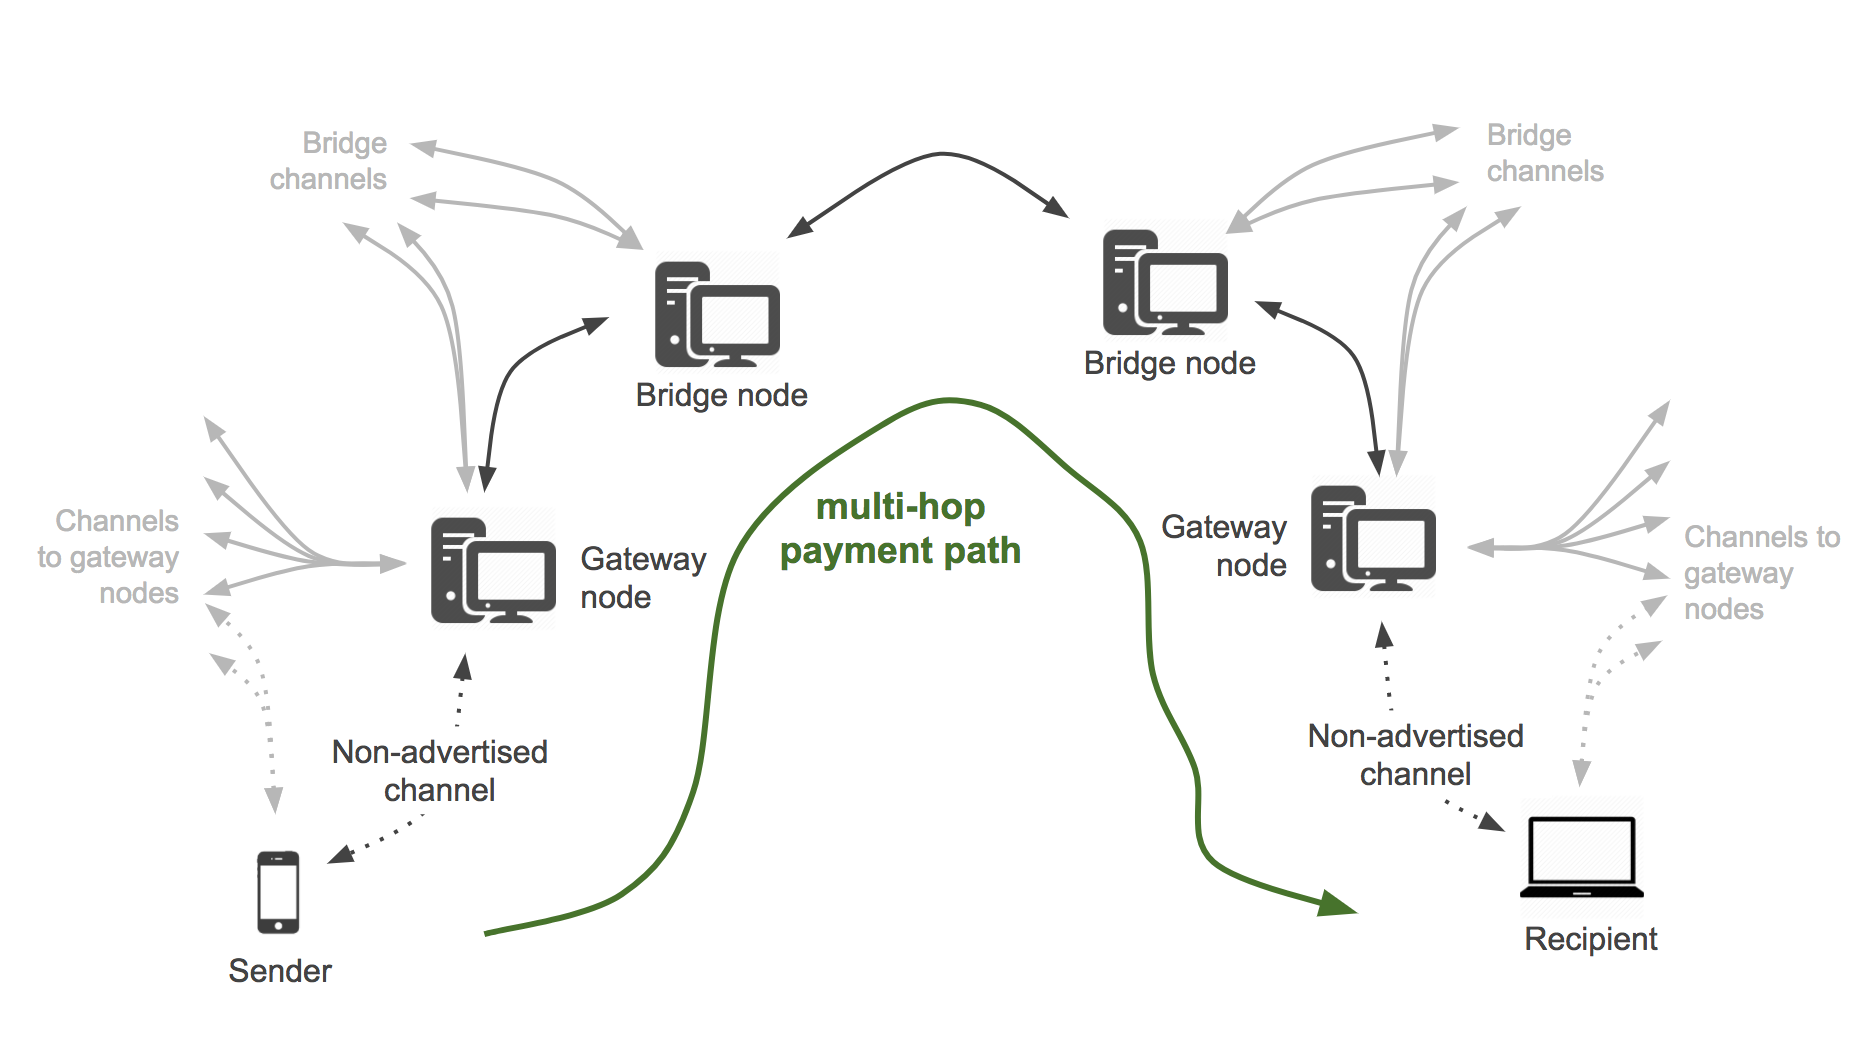 multi-hop payment path